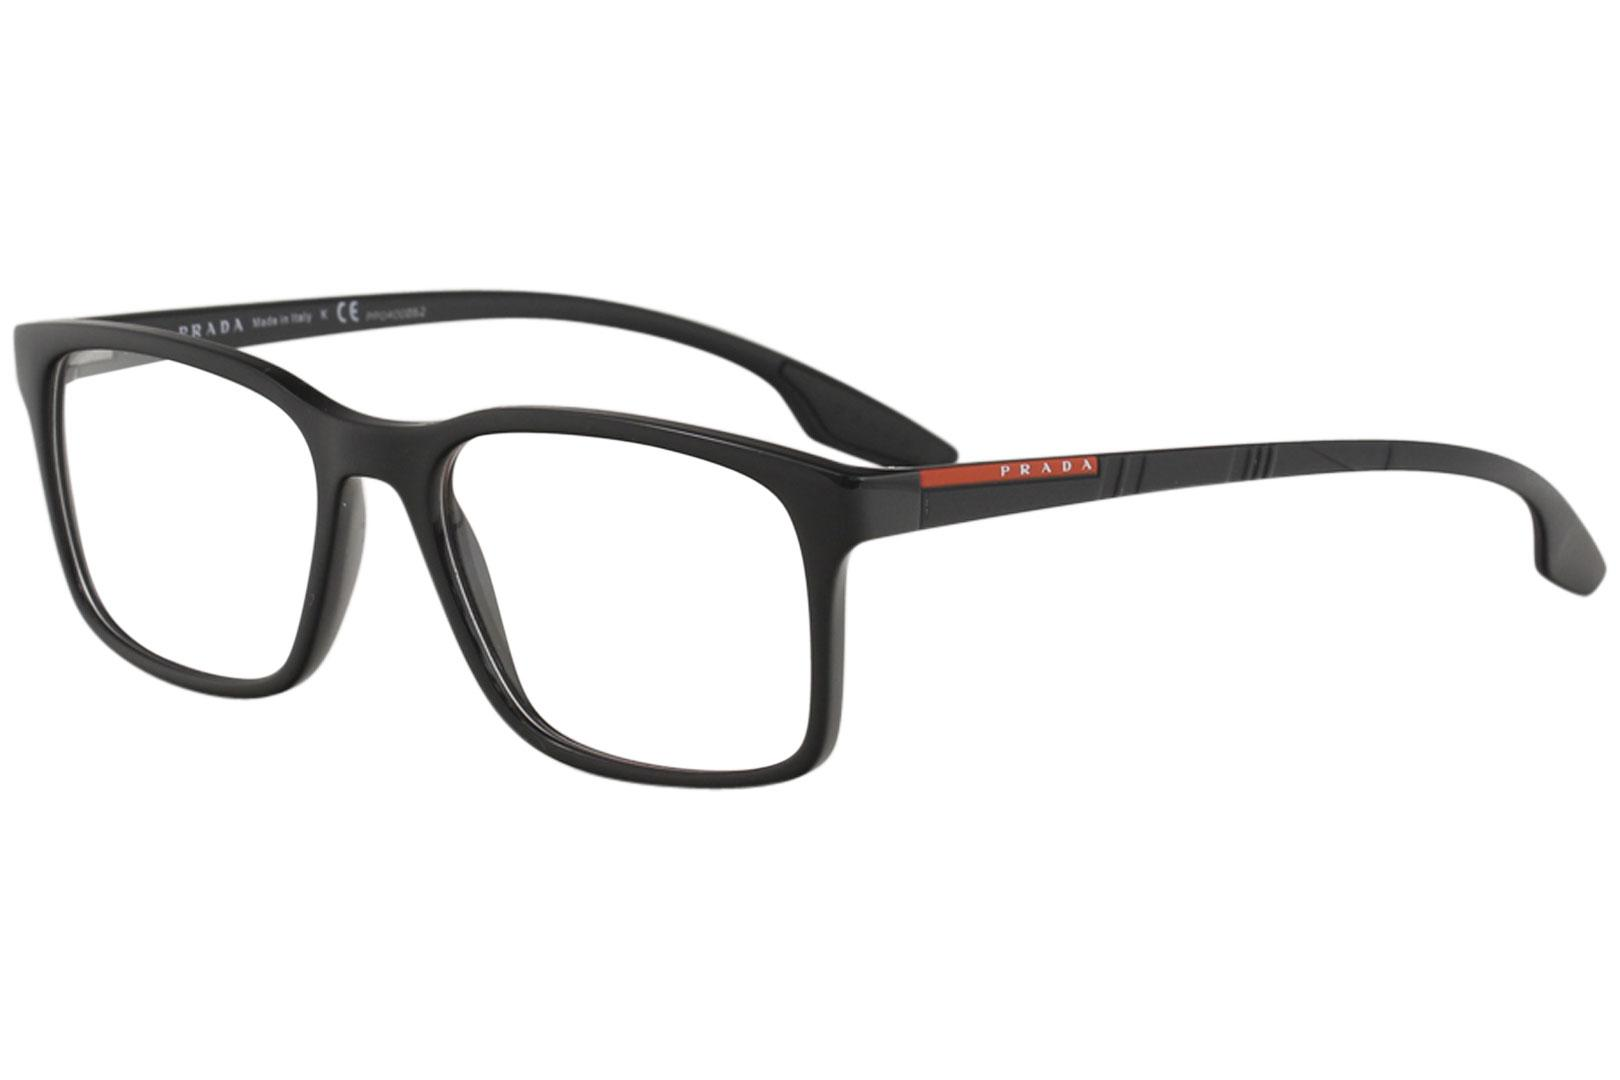 e17d3e10c83 ... Men s Eyeglasses VPS01L VPS 01L Full Rim Optical Frame by Prada Linea  Rossa. Touch to zoom